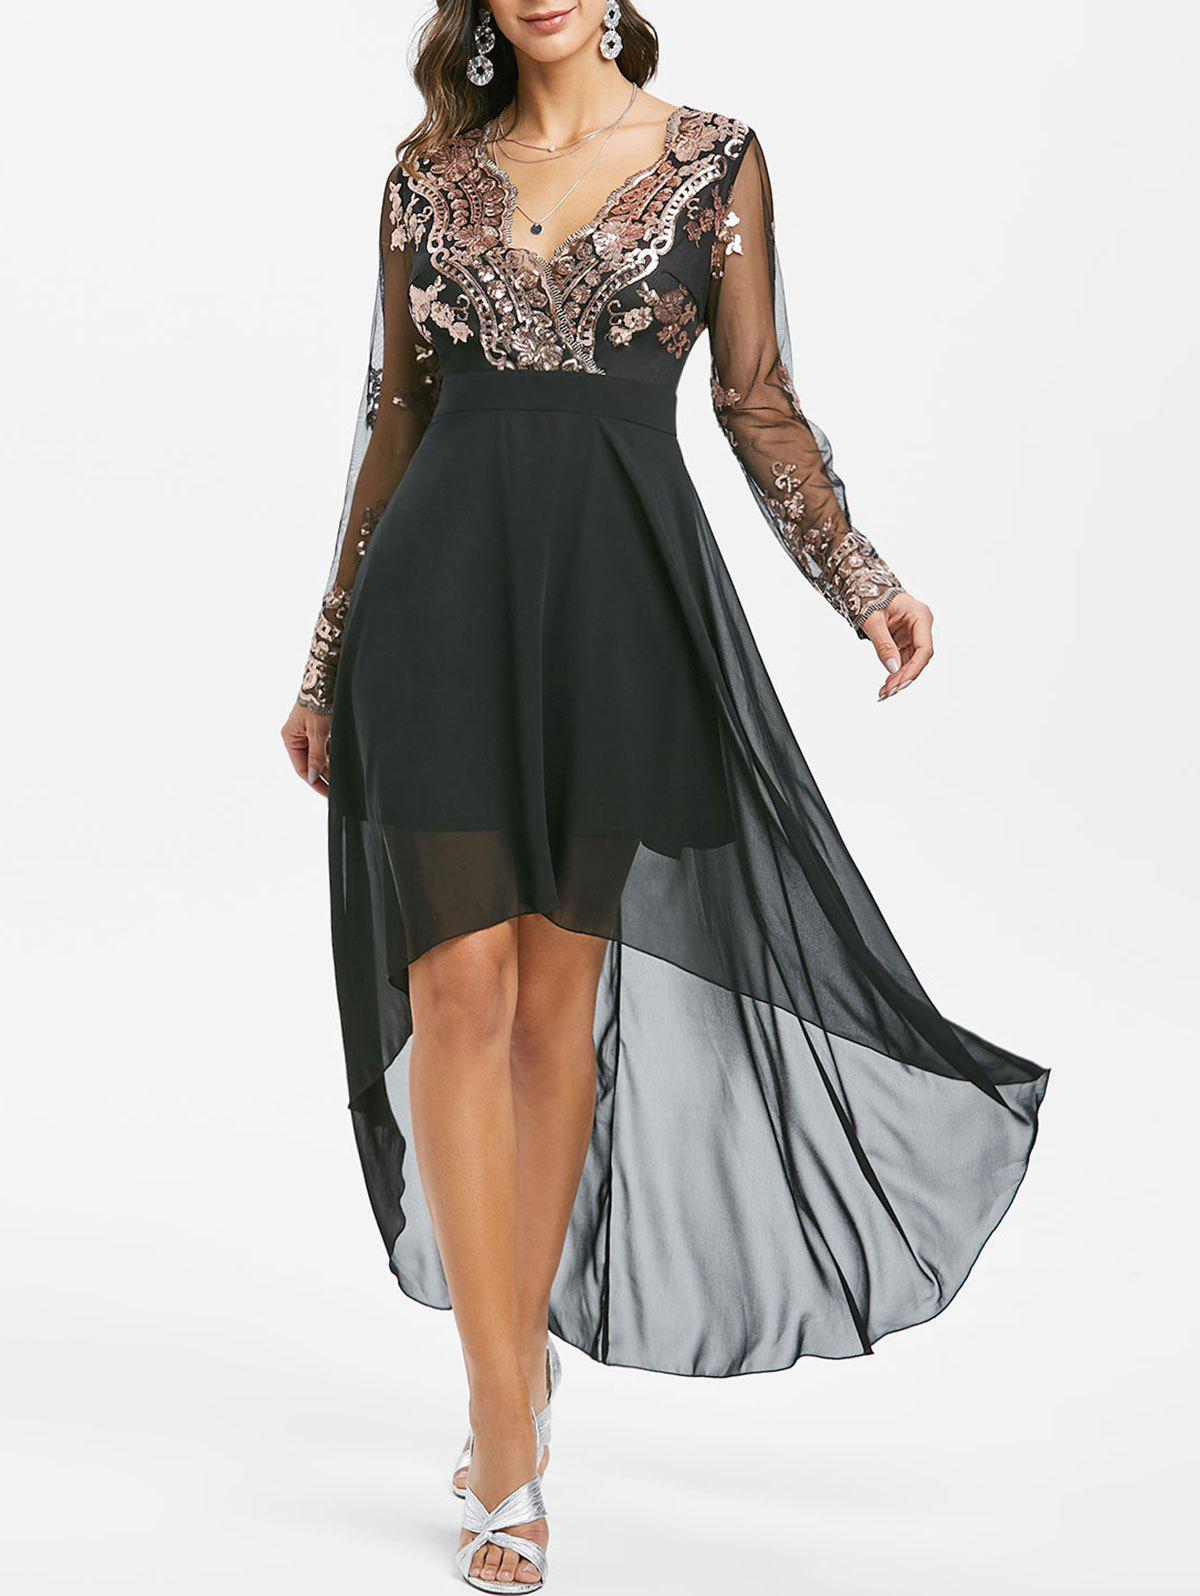 Shop Sequined Mesh Insert High Low Prom Dress